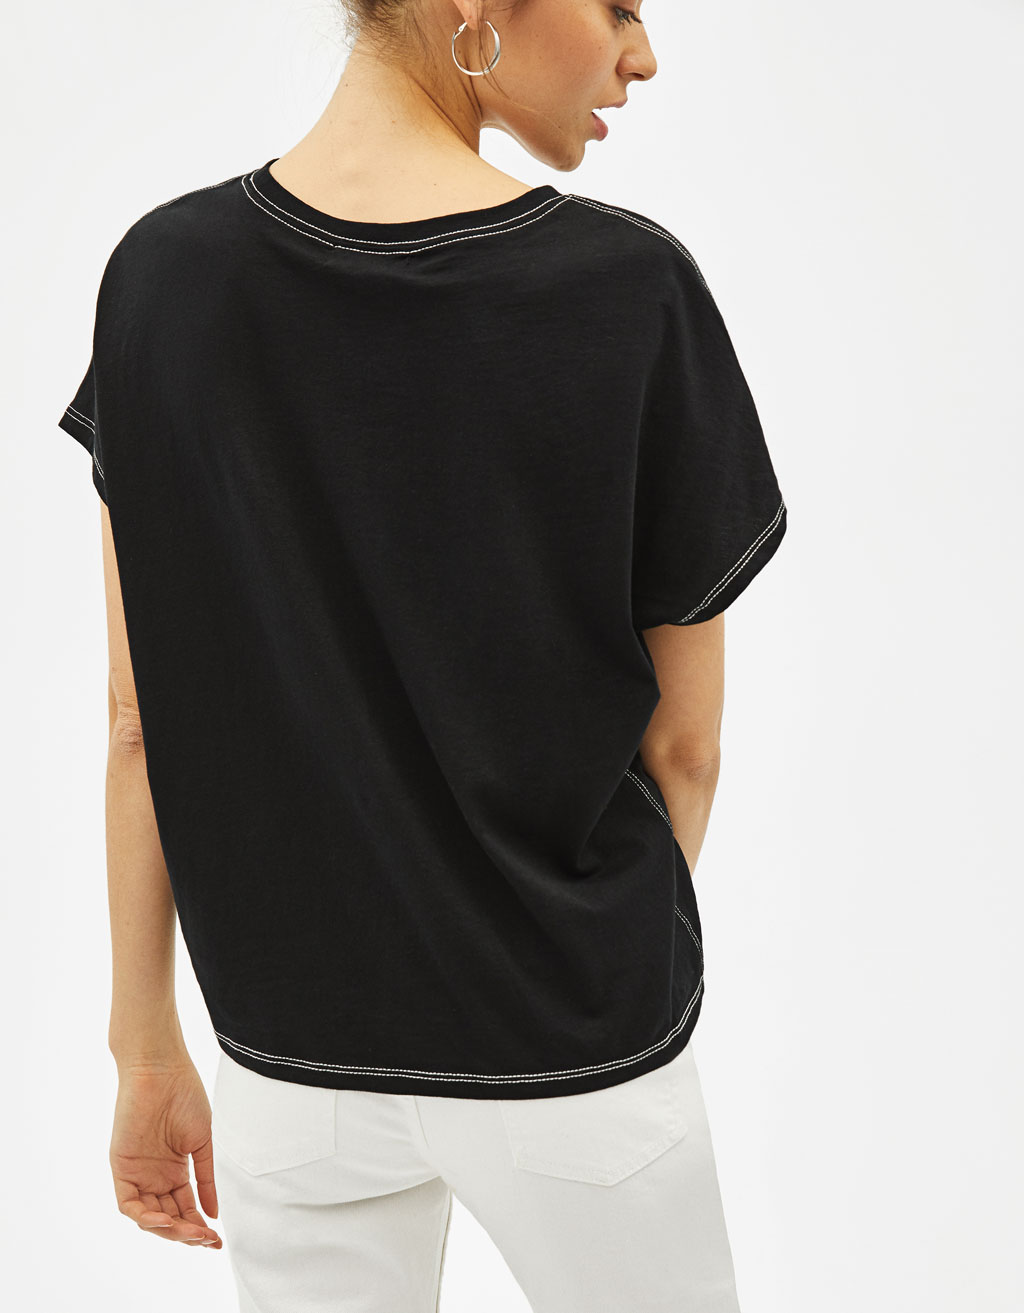 a984213df1 Join Life T-shirt with pocket and contrasting seams